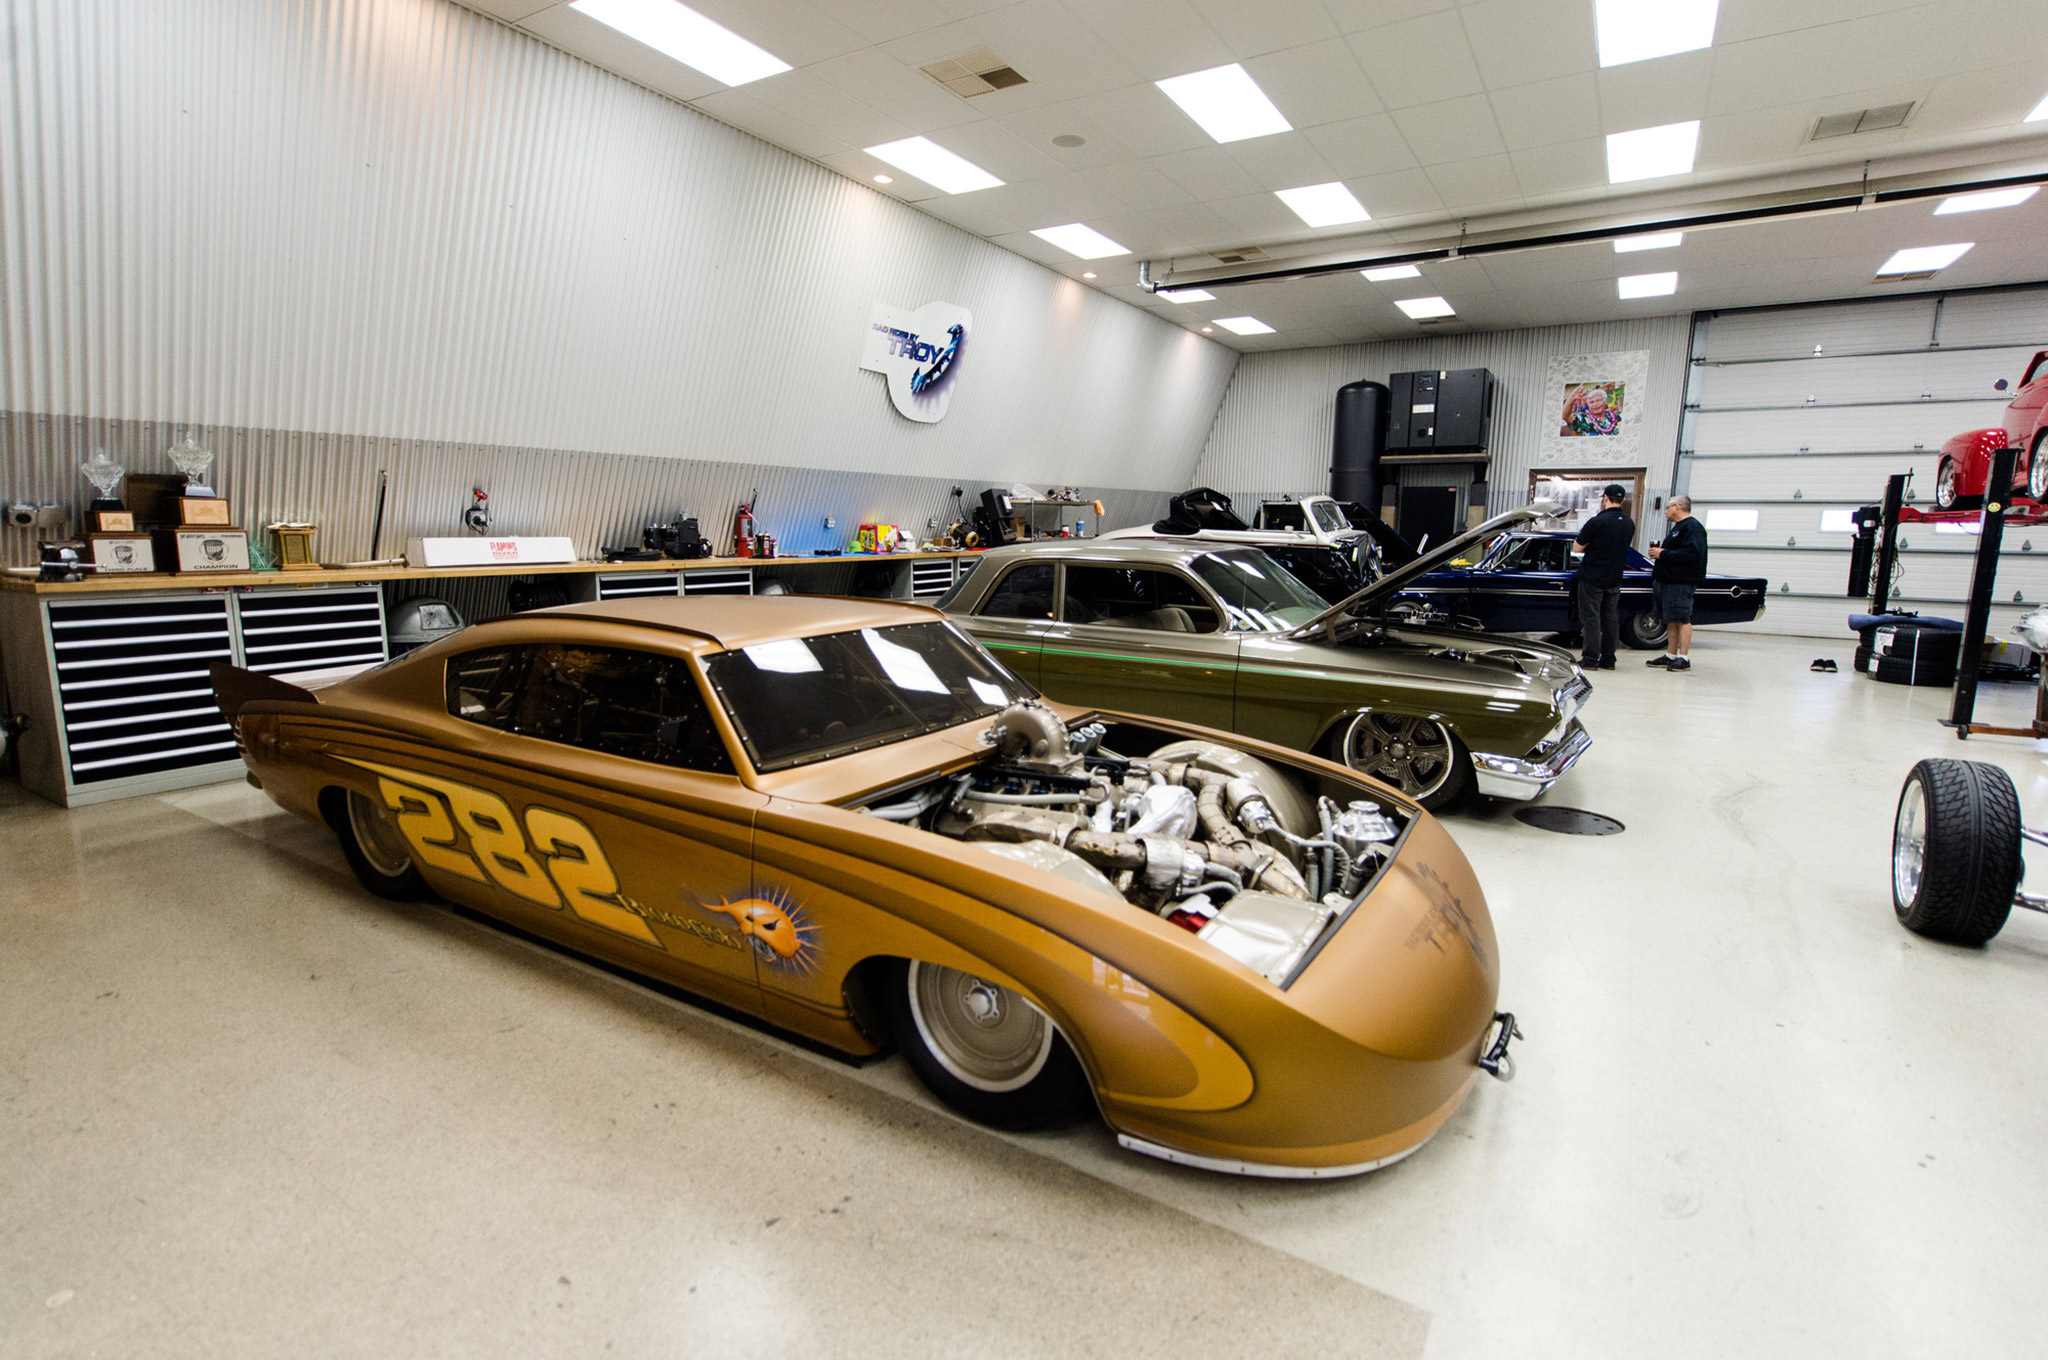 Blowfish has seen a number of engines in order to take records in several classes at Bonneville.